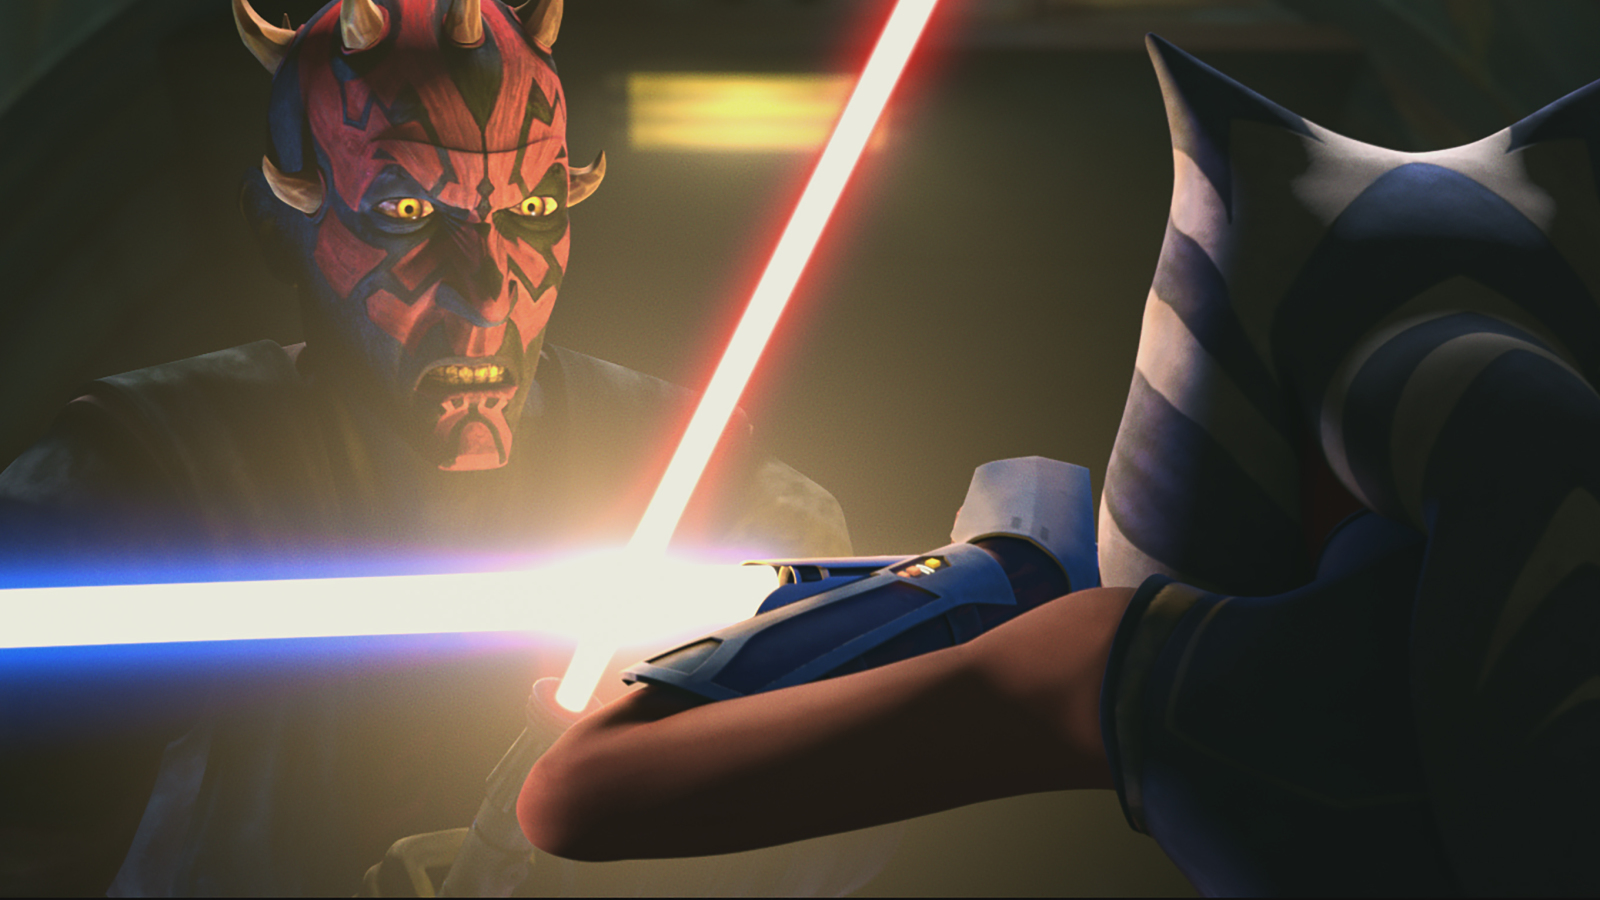 Pics Teasers And Synopses For The End Of Star Wars The Clone Wars